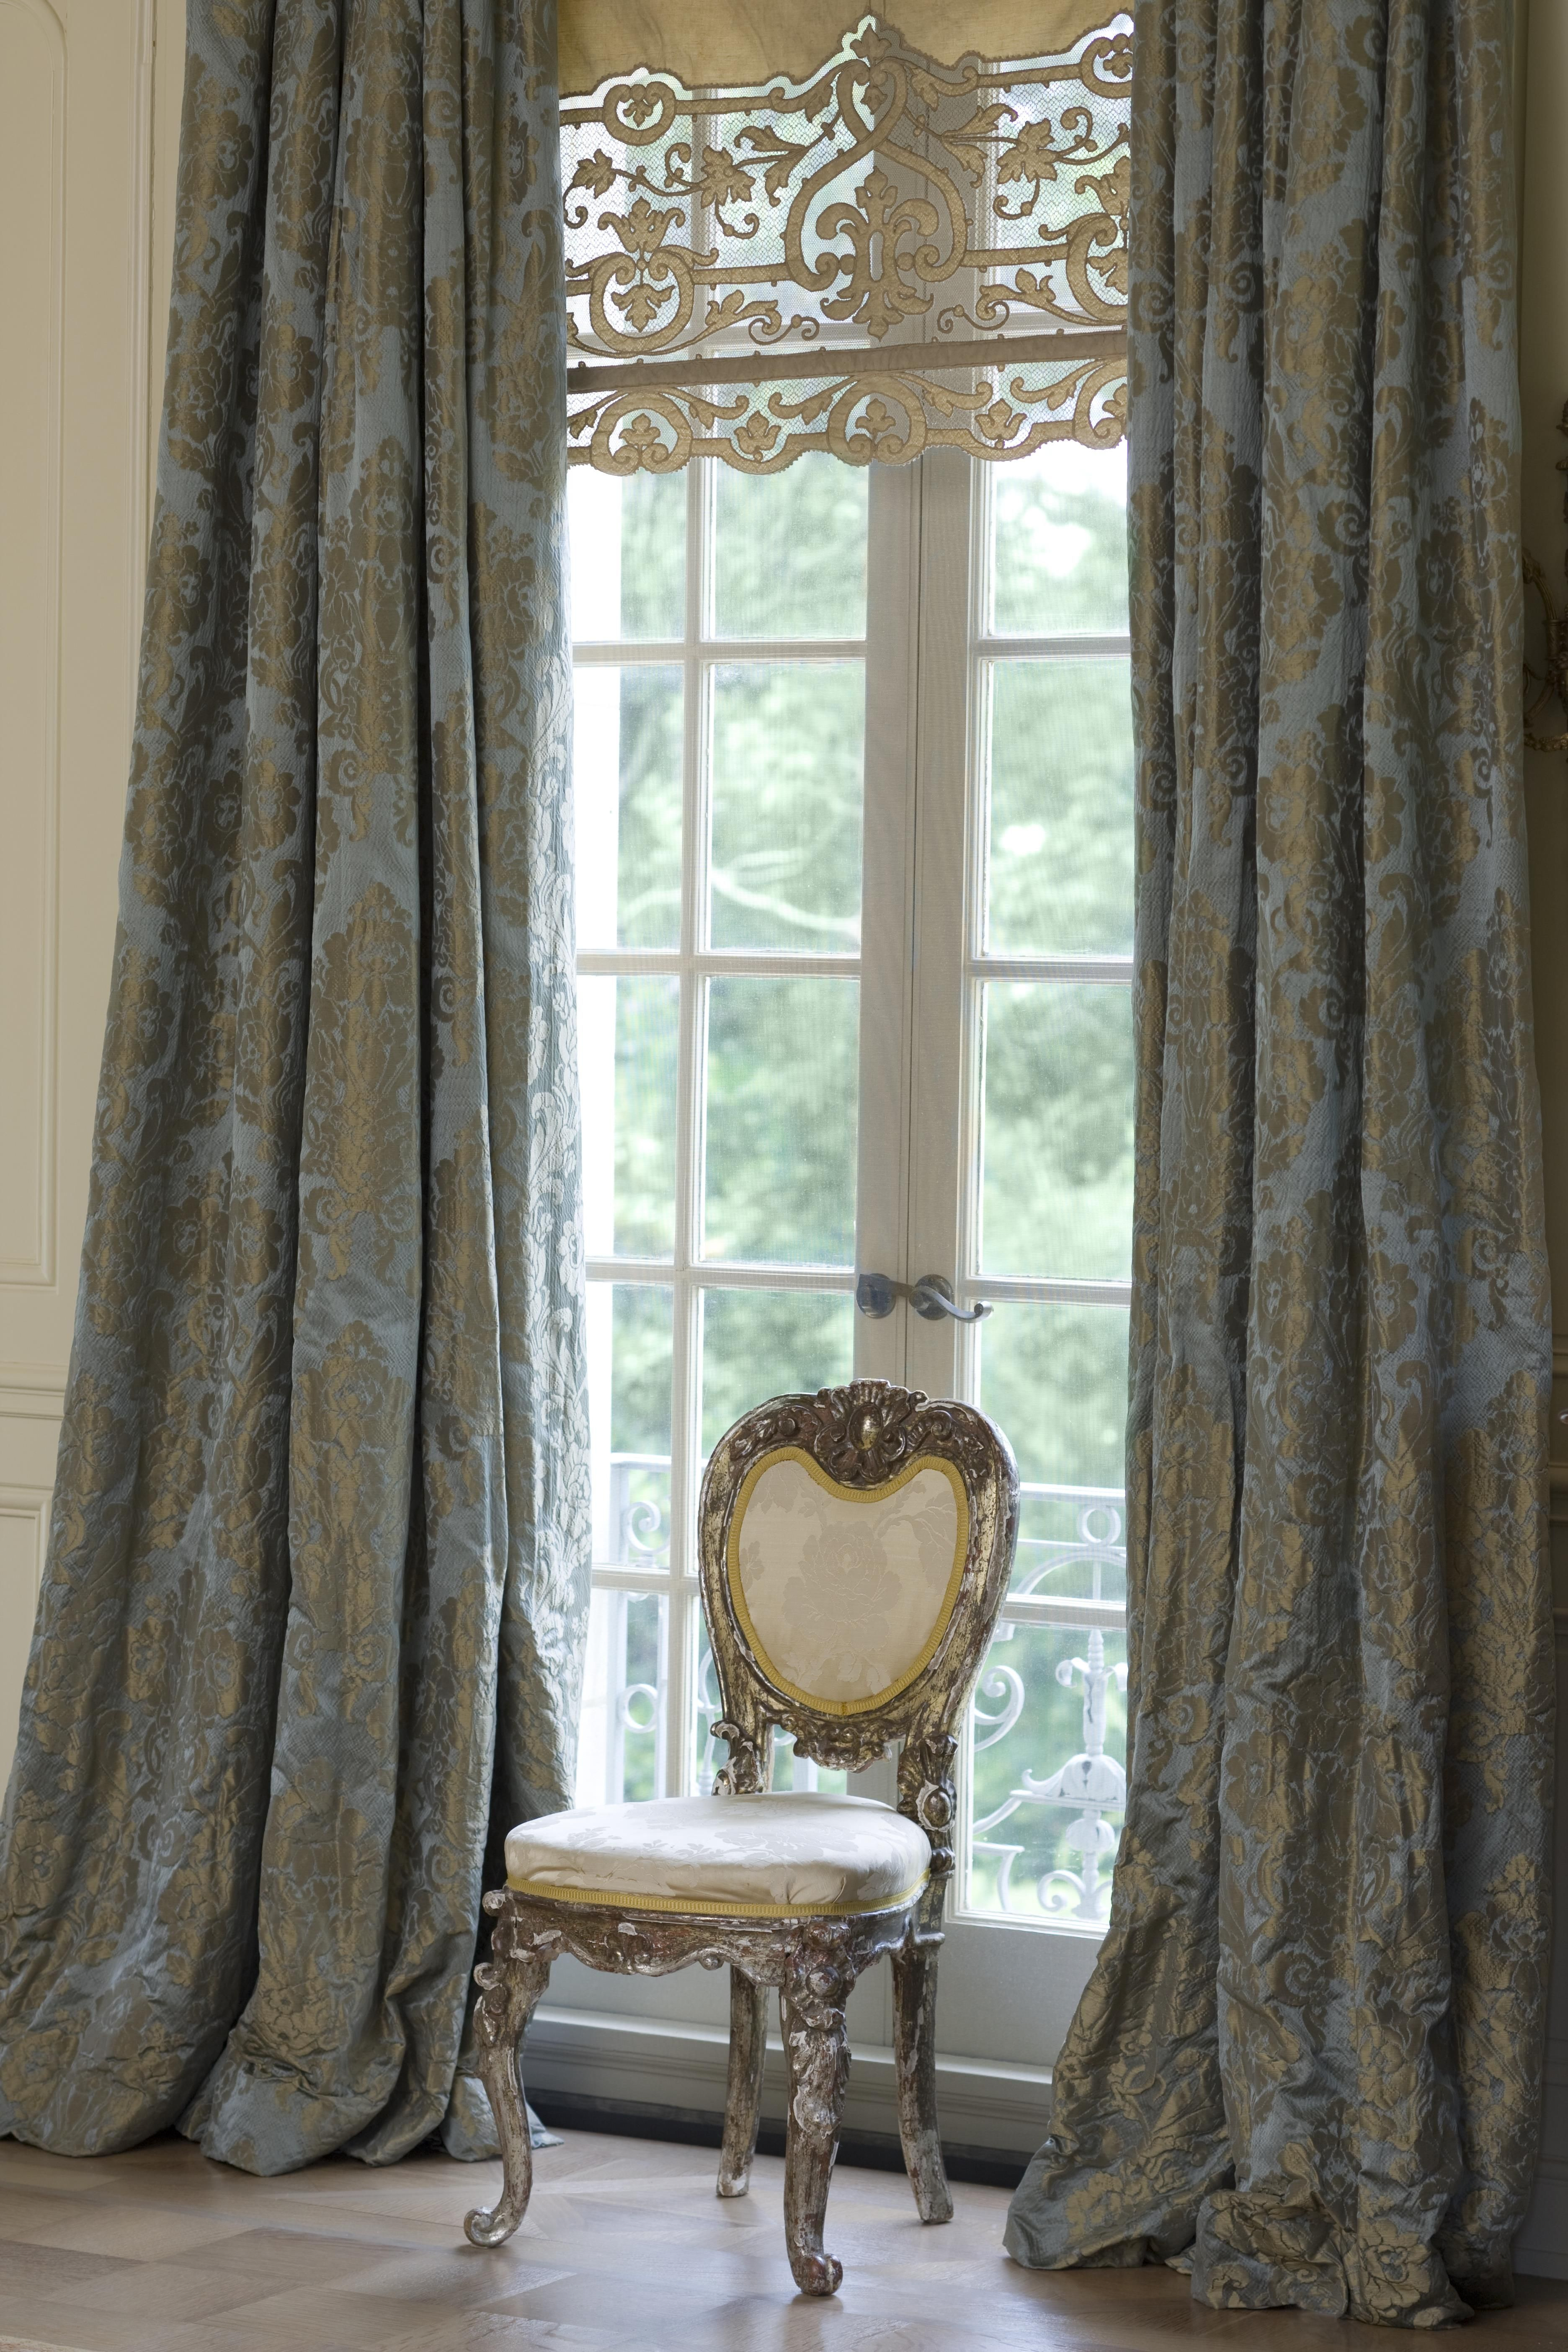 cotton hem and in hung banding valance pin on flat toile fabric drapes striped with interlined from curtains